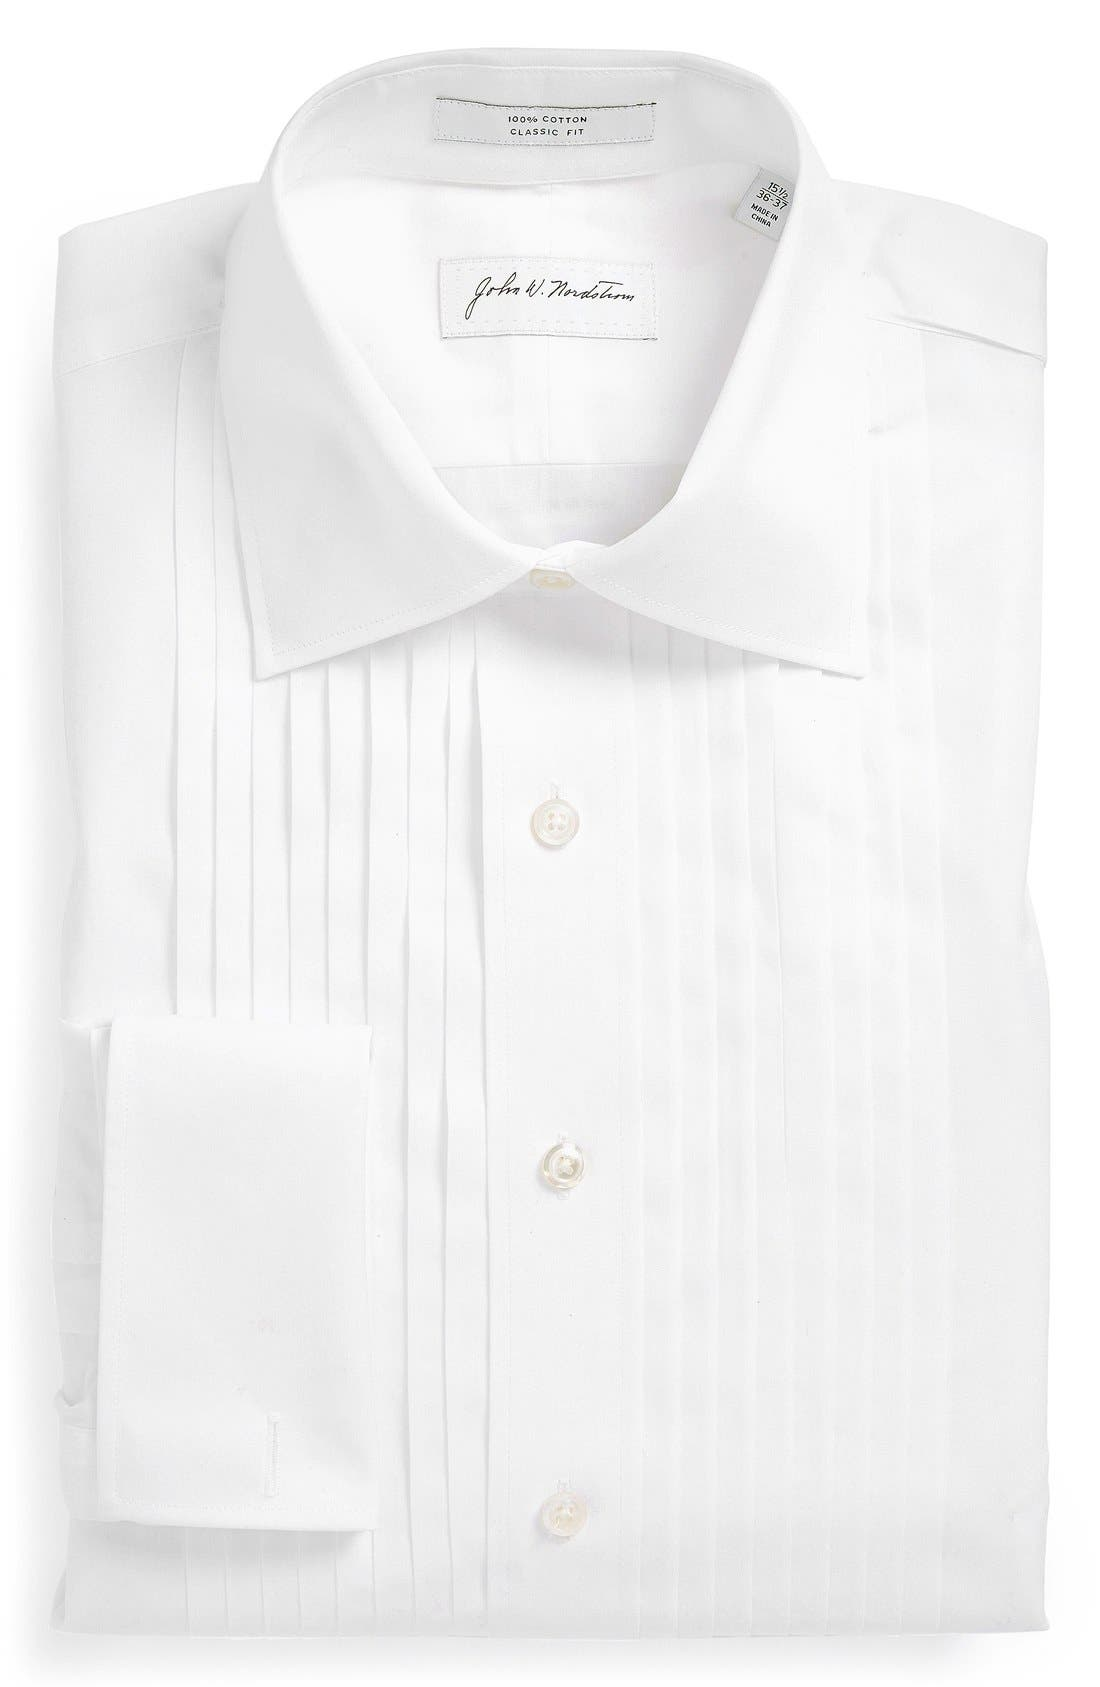 Alternate Image 1 Selected - John W. Nordstrom® Classic Fit French Cuff Tuxedo Shirt